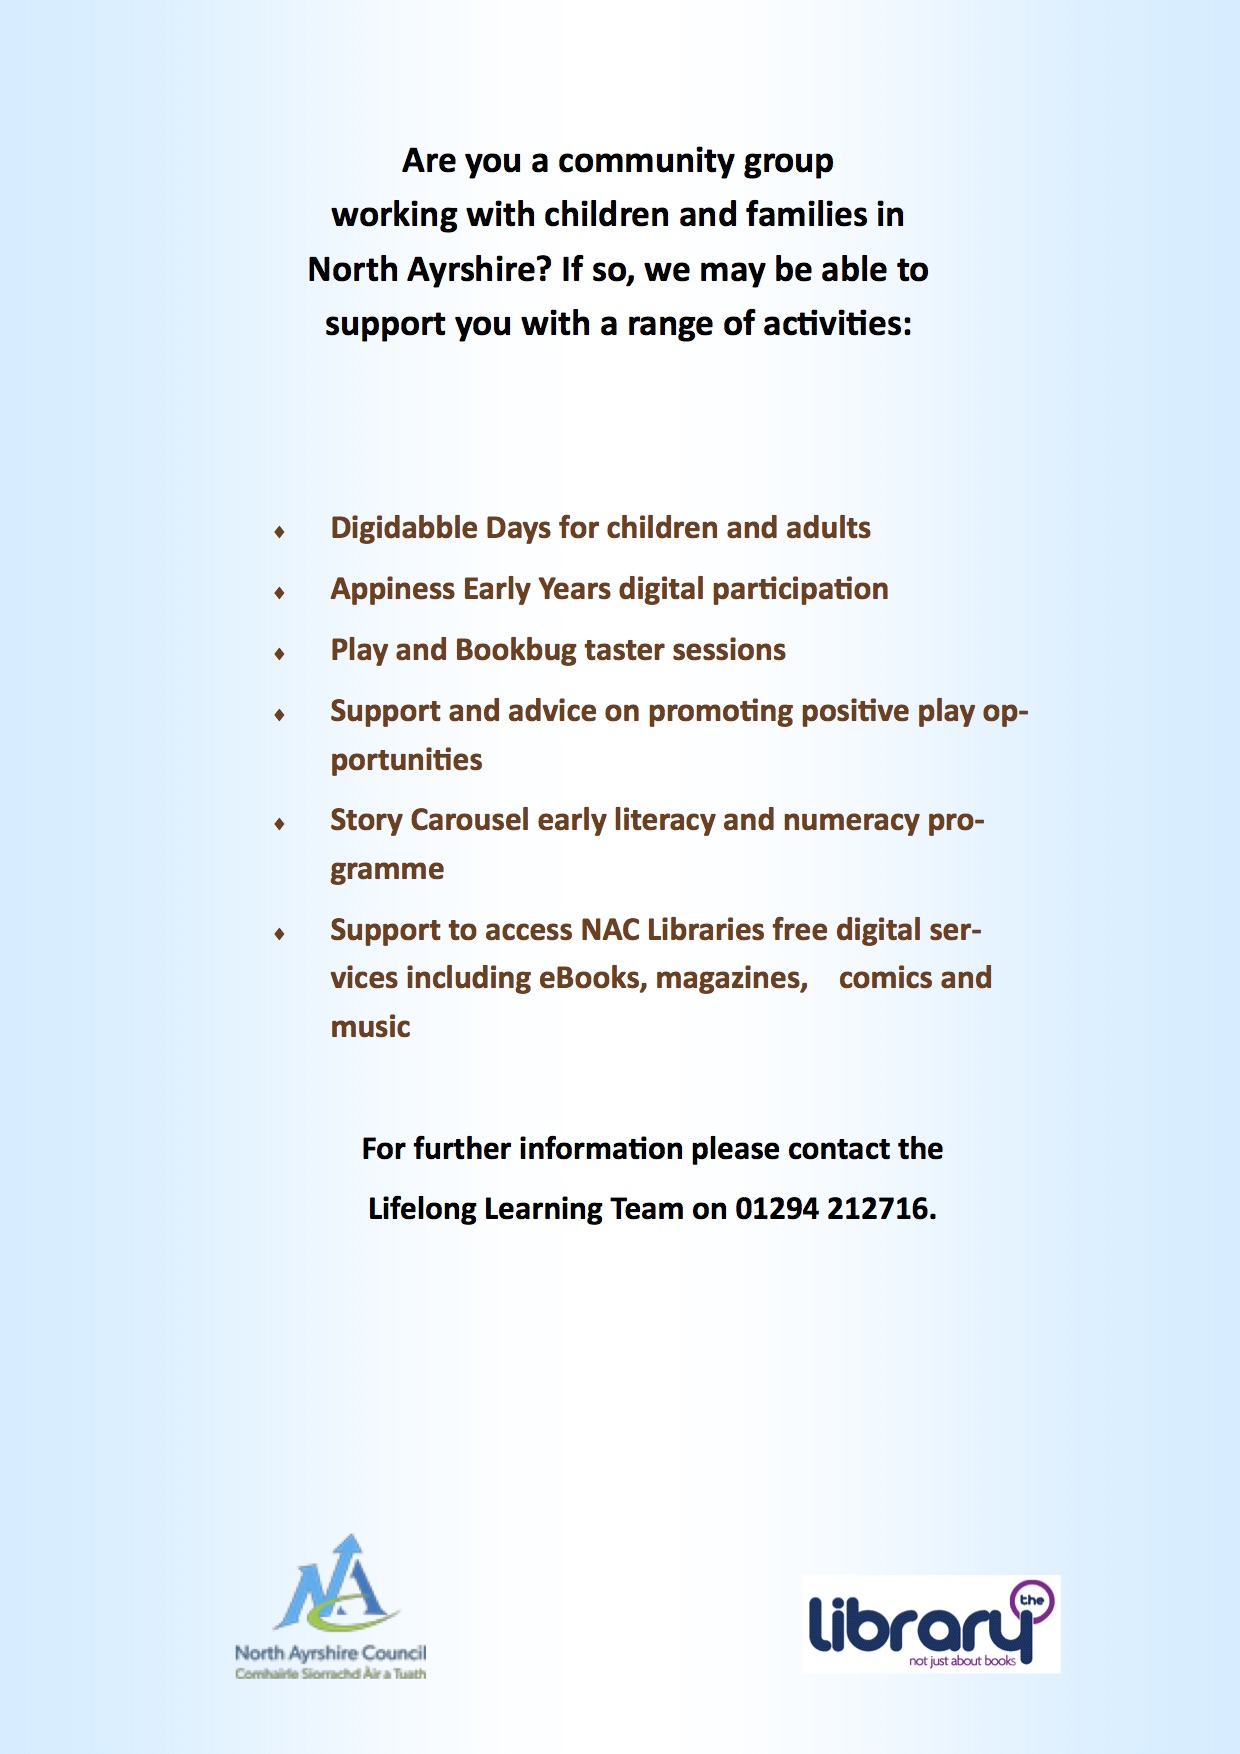 children-families-activities-support